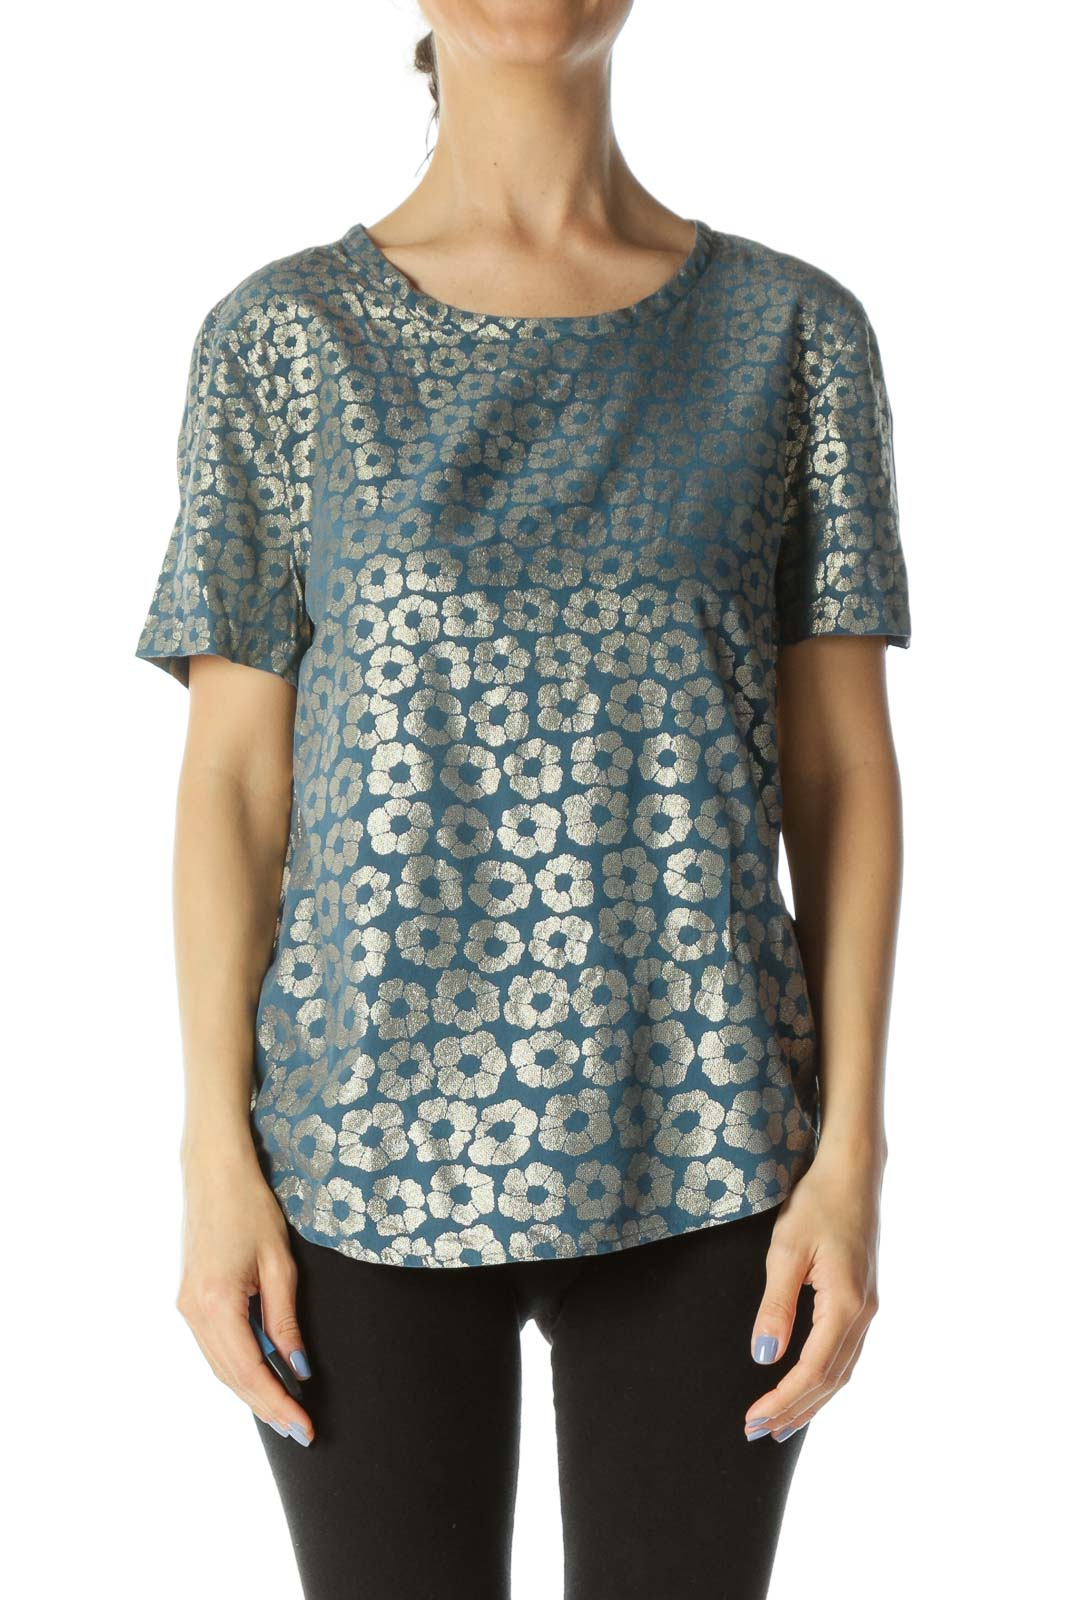 Teal-Blue/Gold Short-Sleeve Round-Neck Floral-Print Top